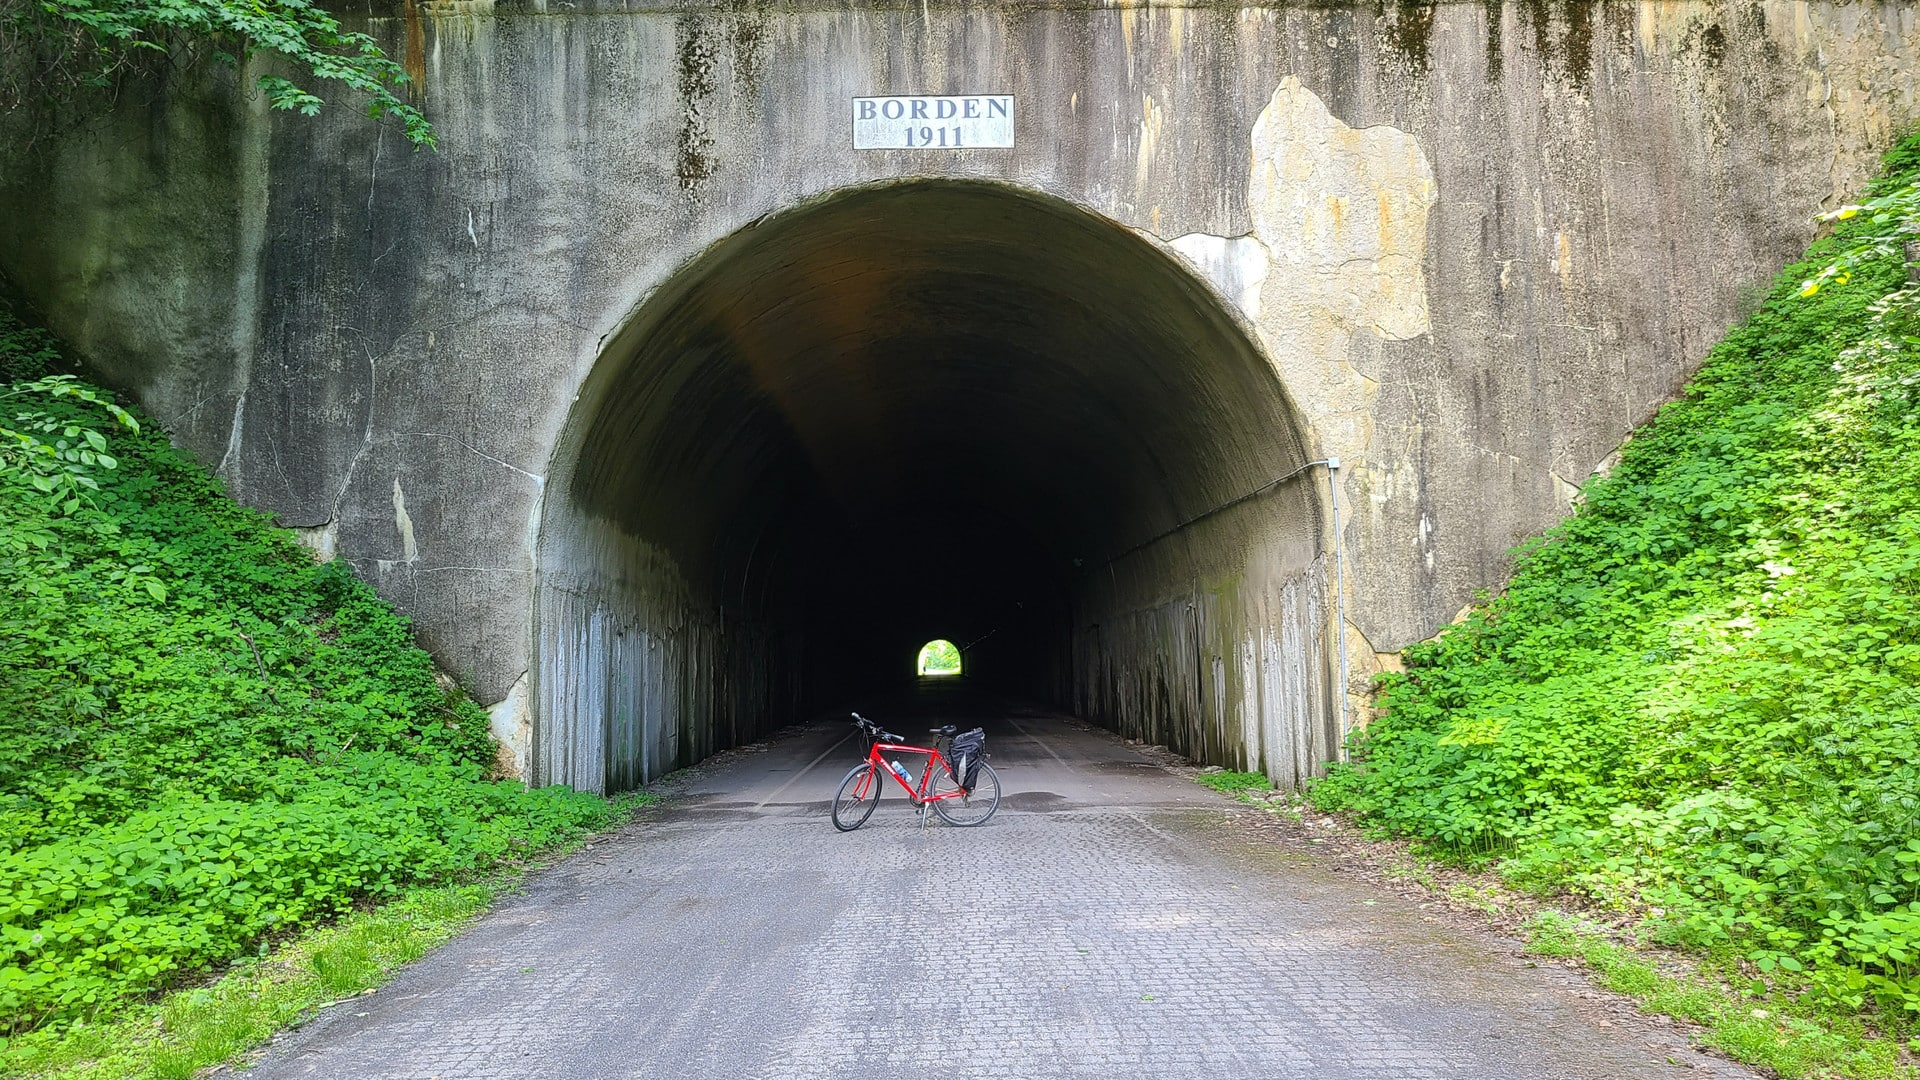 A red bike with a black and silver pannier stands across the entrance to a large tunnel.